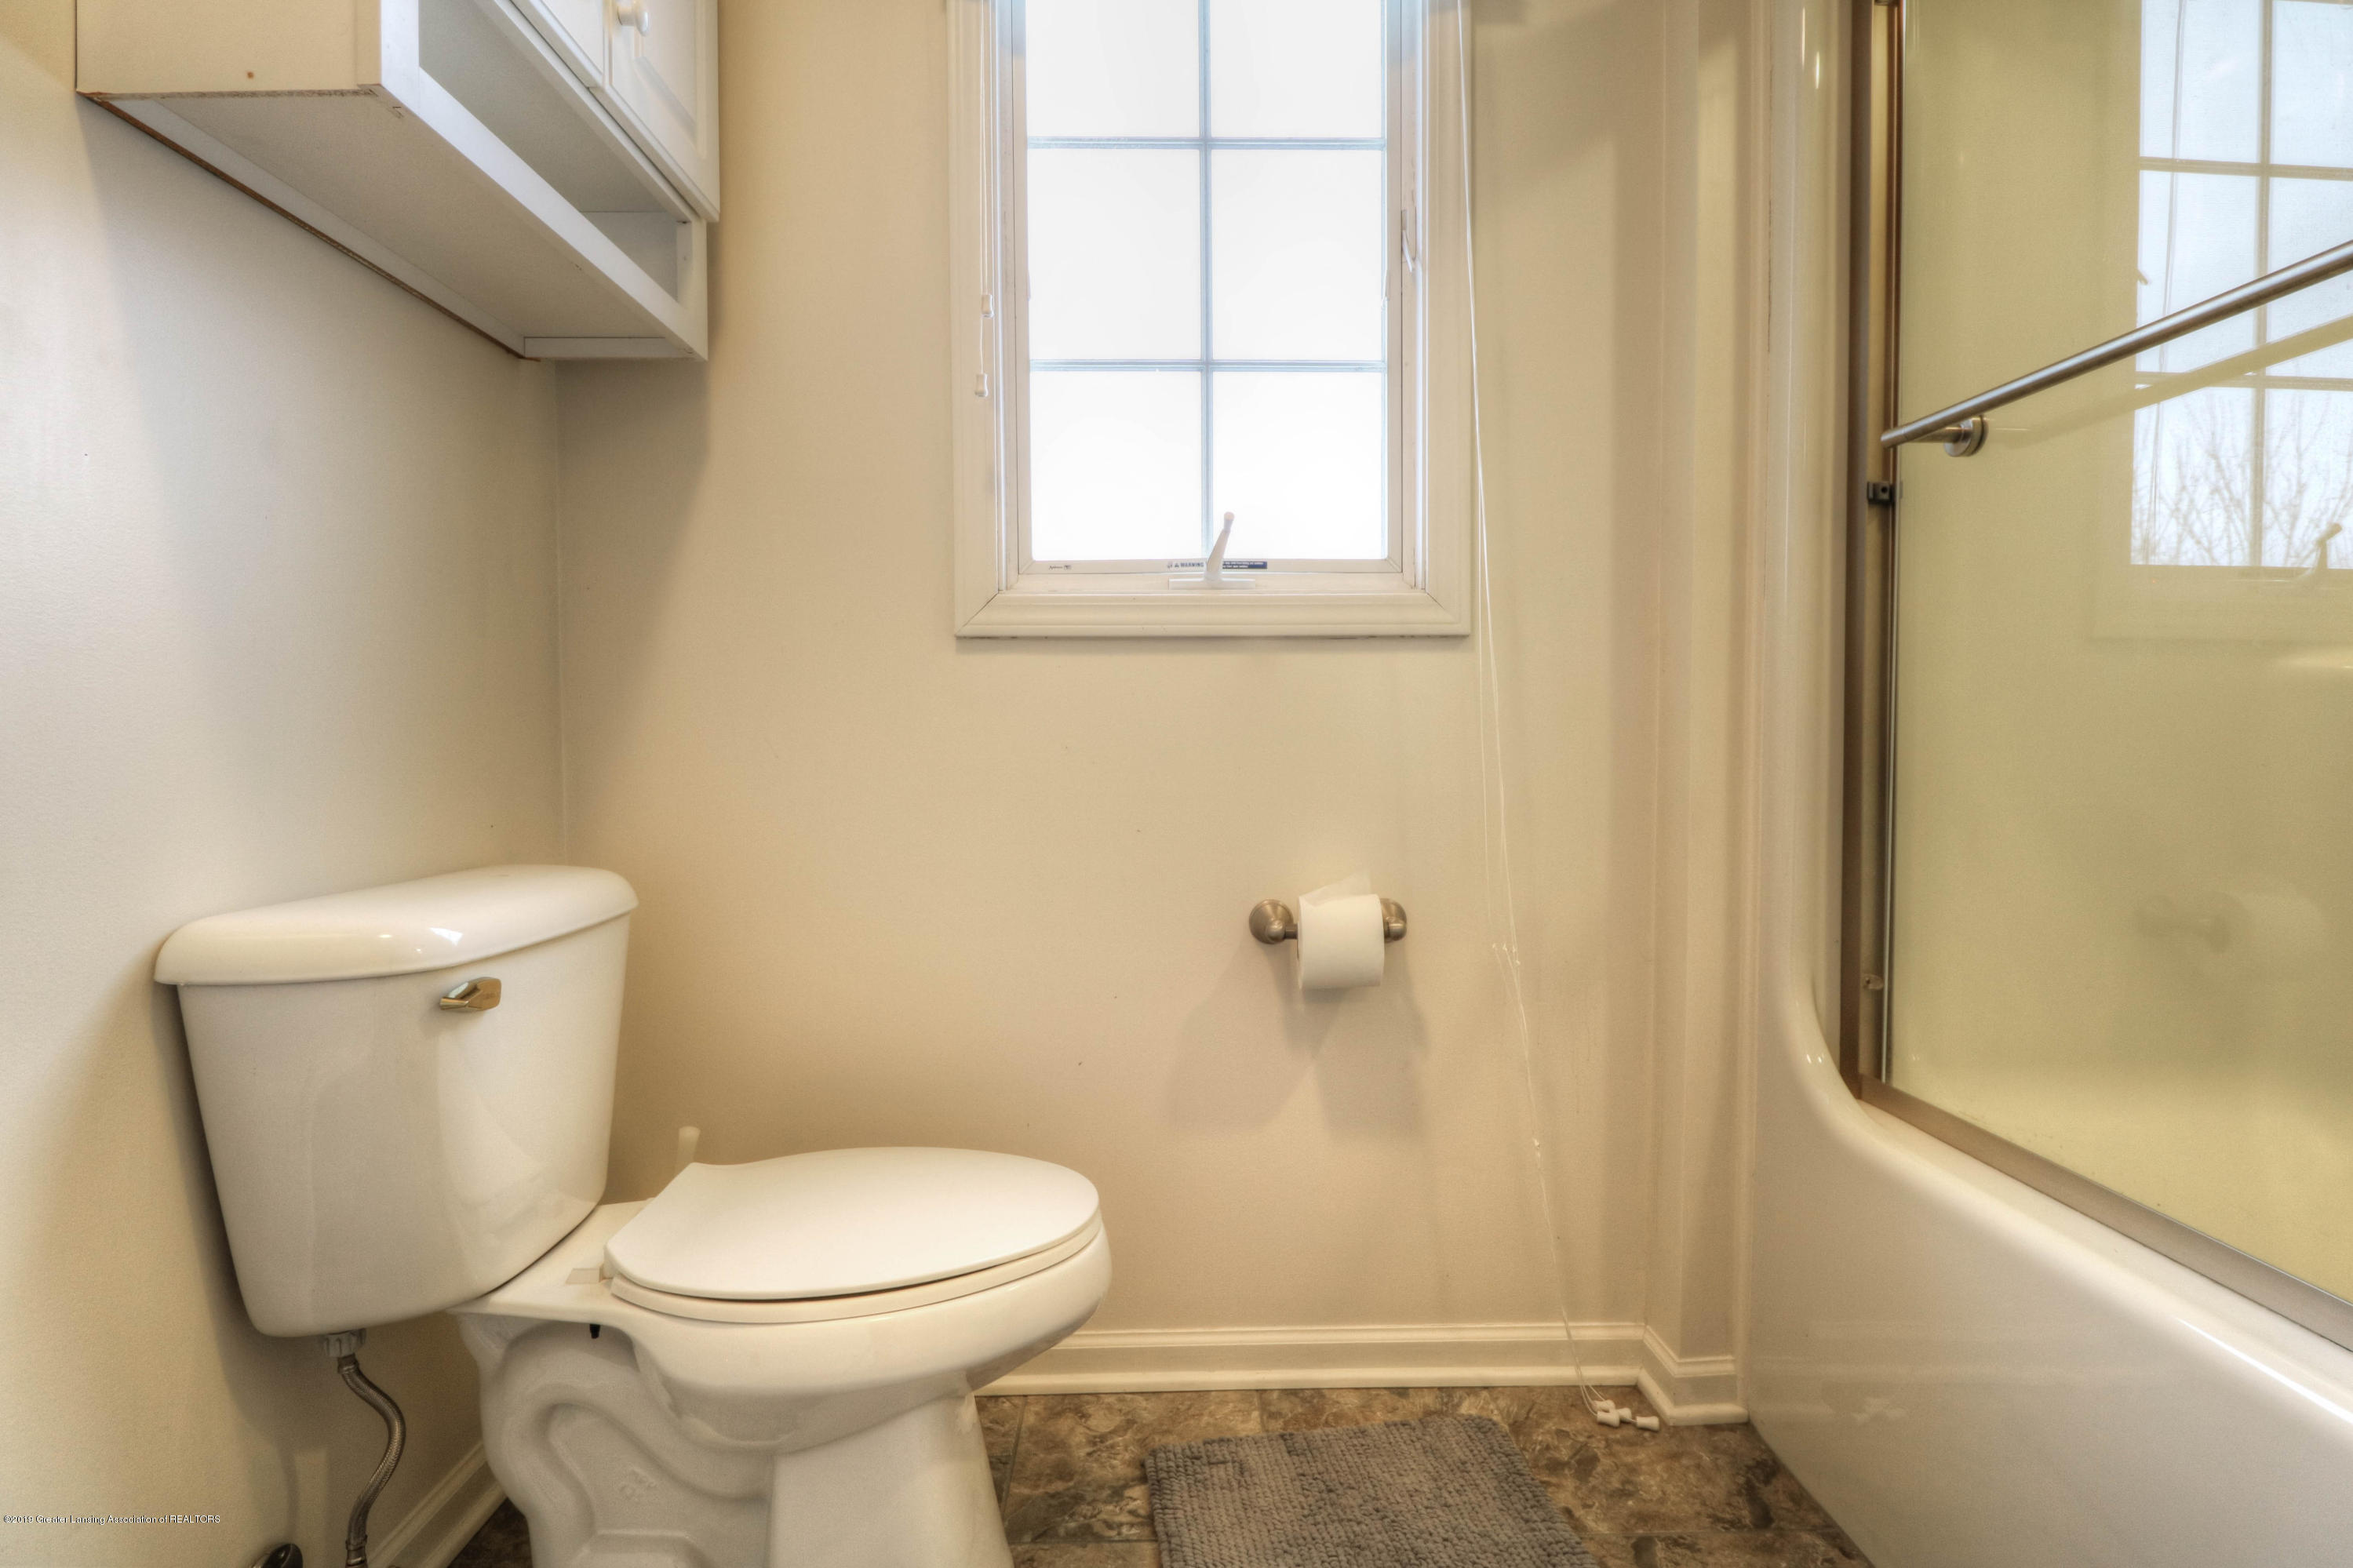 804 Sunrise Cir - Bathroom - 23